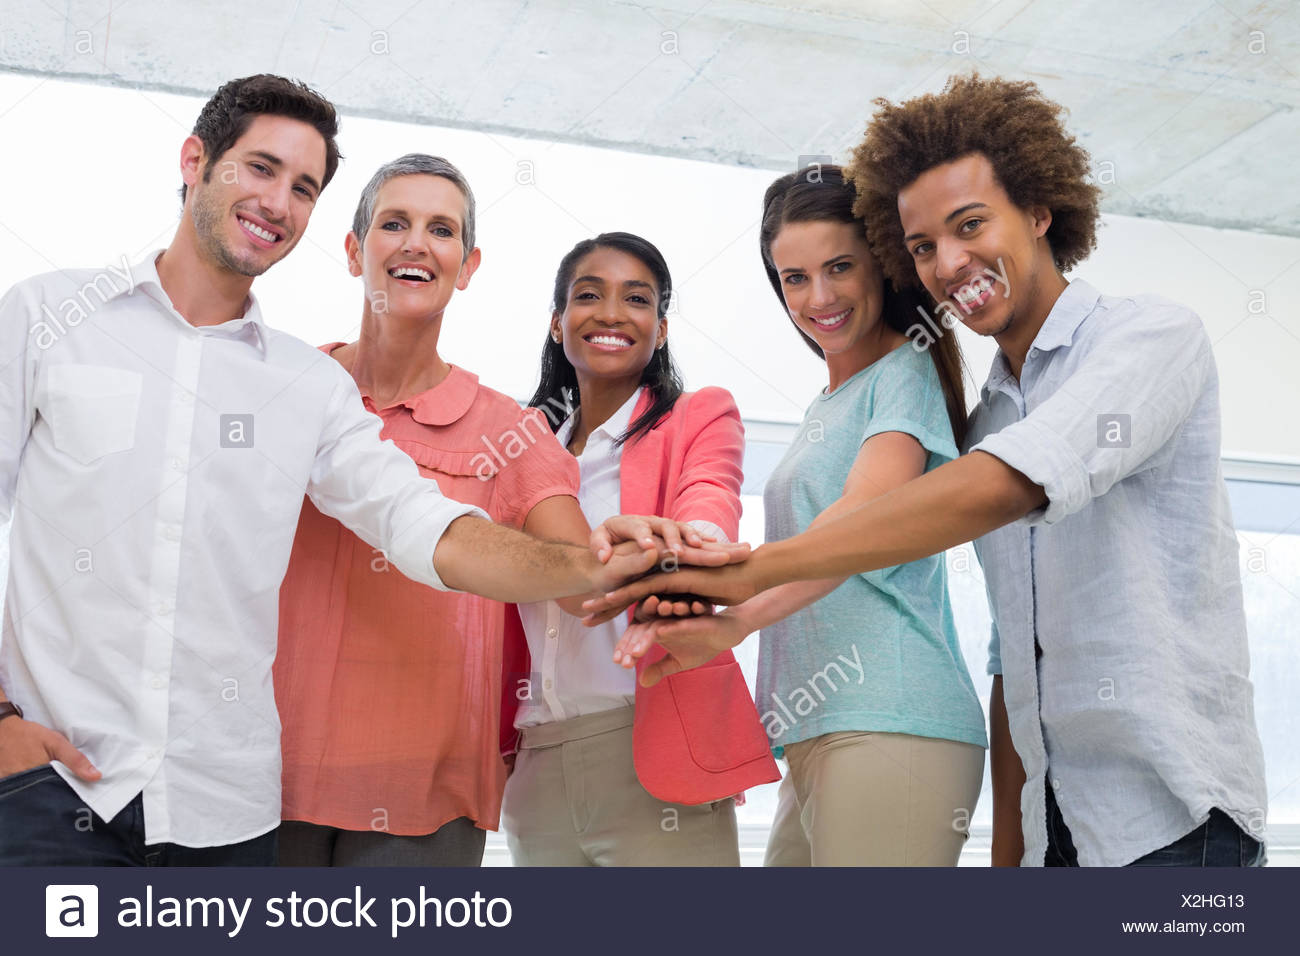 Attractive business people uniting at work - Stock Image